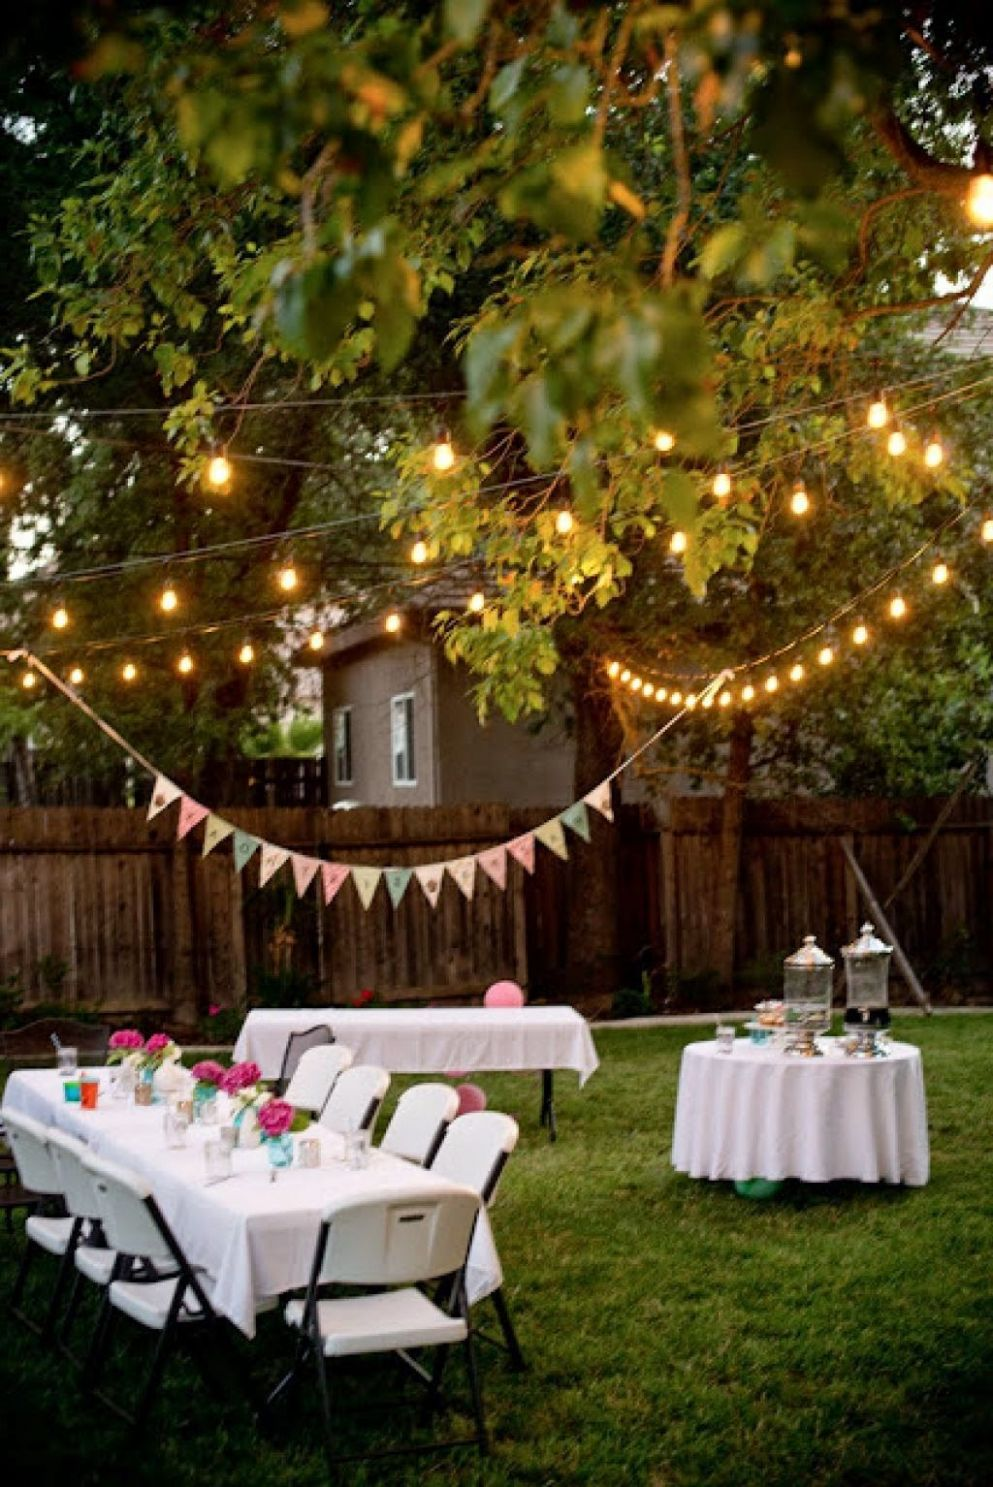 Enjoy a year-end party in the backyard (With images) | Bbq party ..